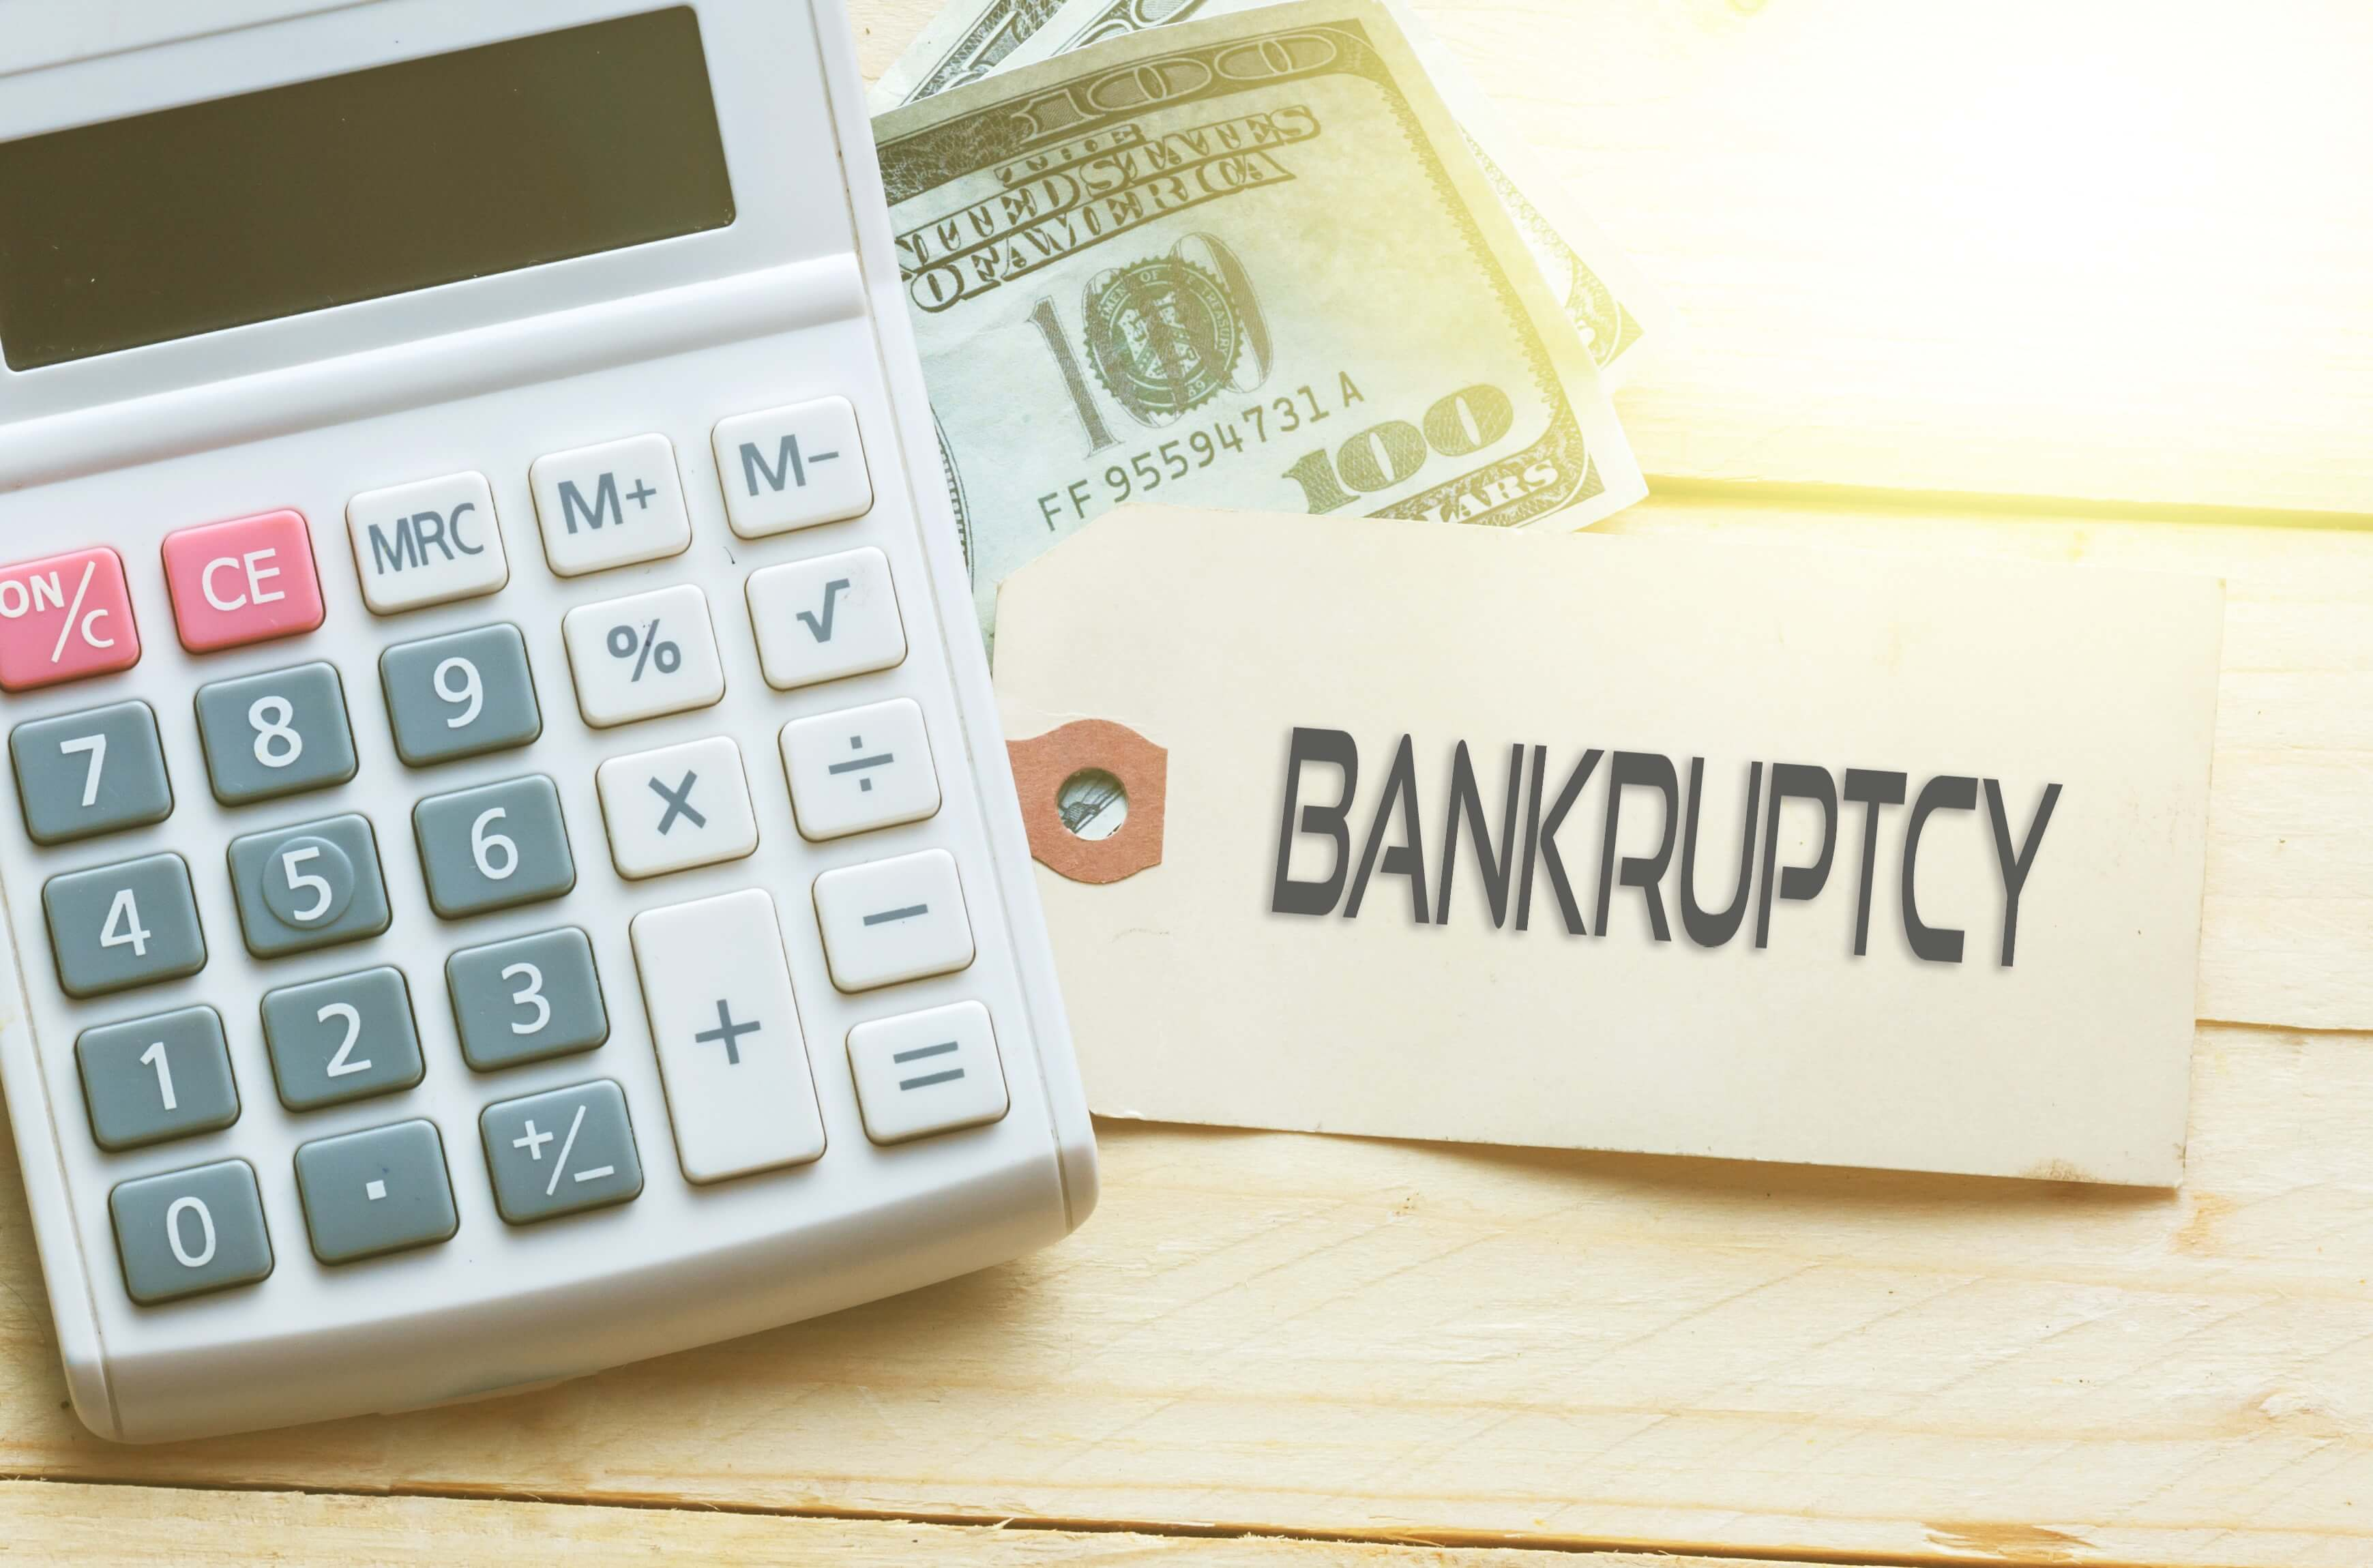 file bankruptcy for tips to stop foreclosure fast is to sell to cash buyers